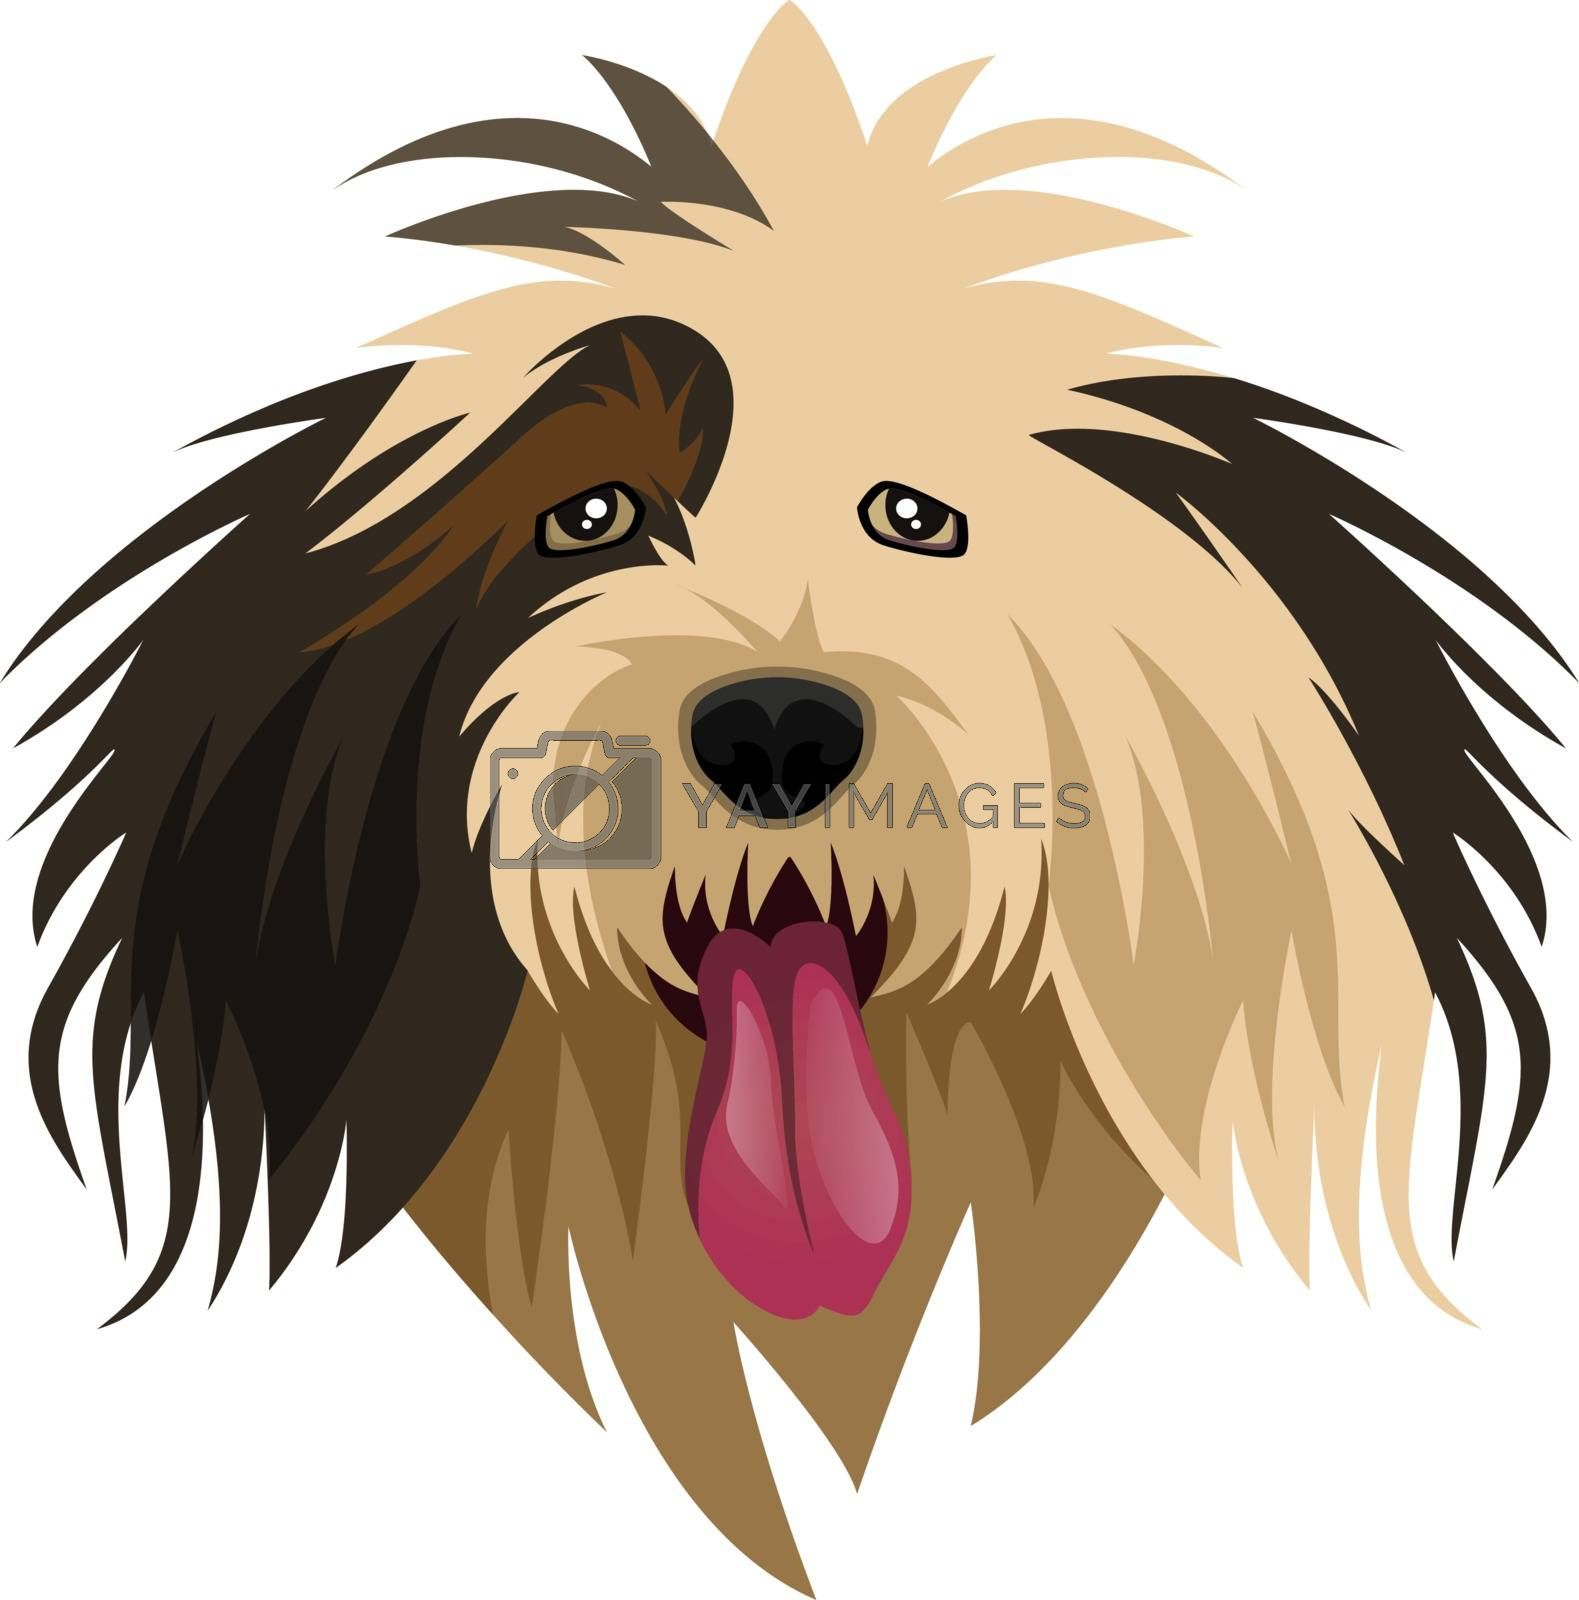 Sheep Dog illustration vector on white background